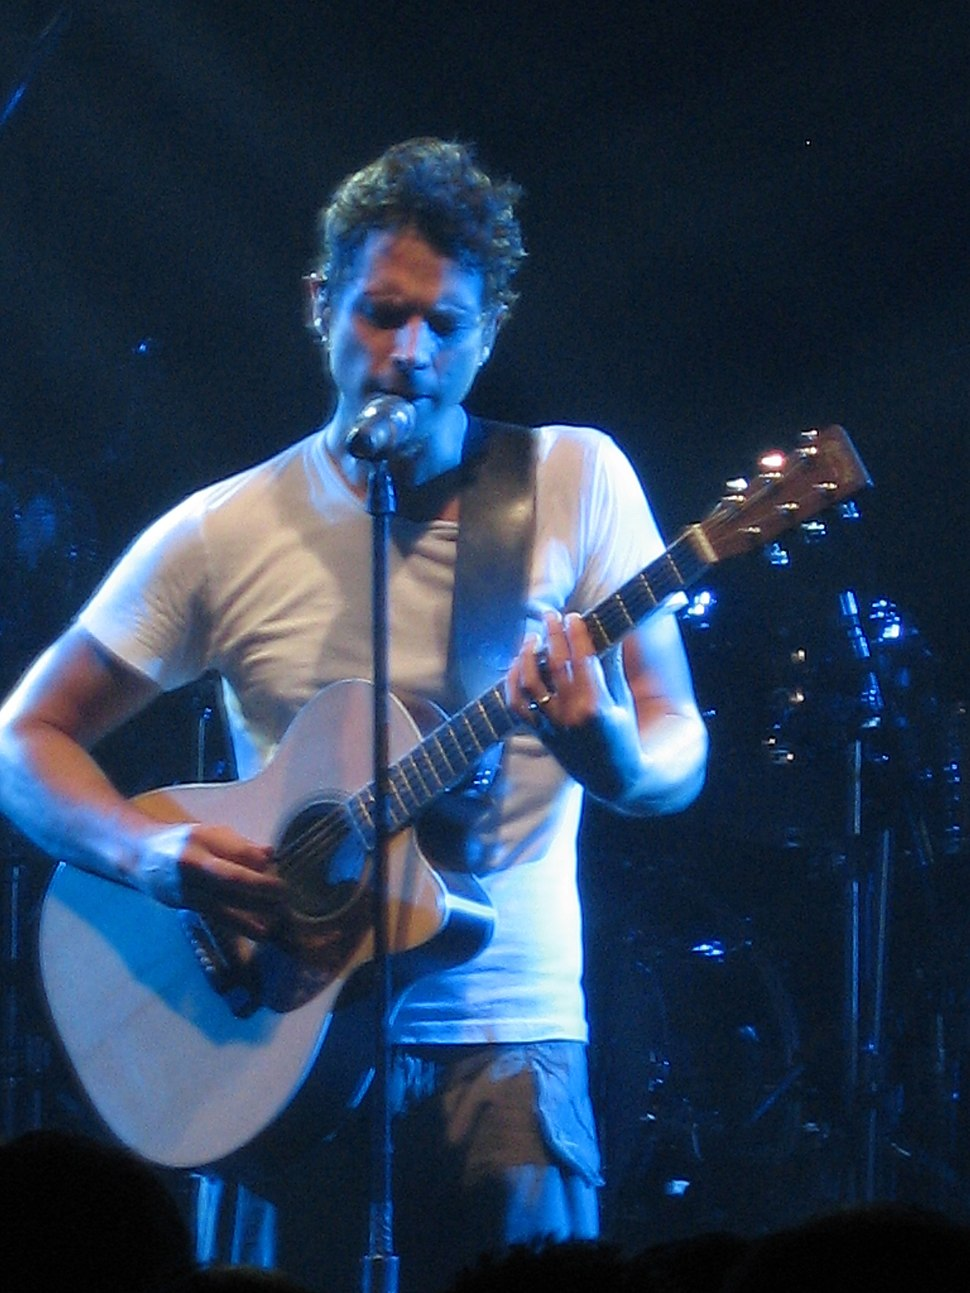 A man playing a guitar and singing on stage at a concert.